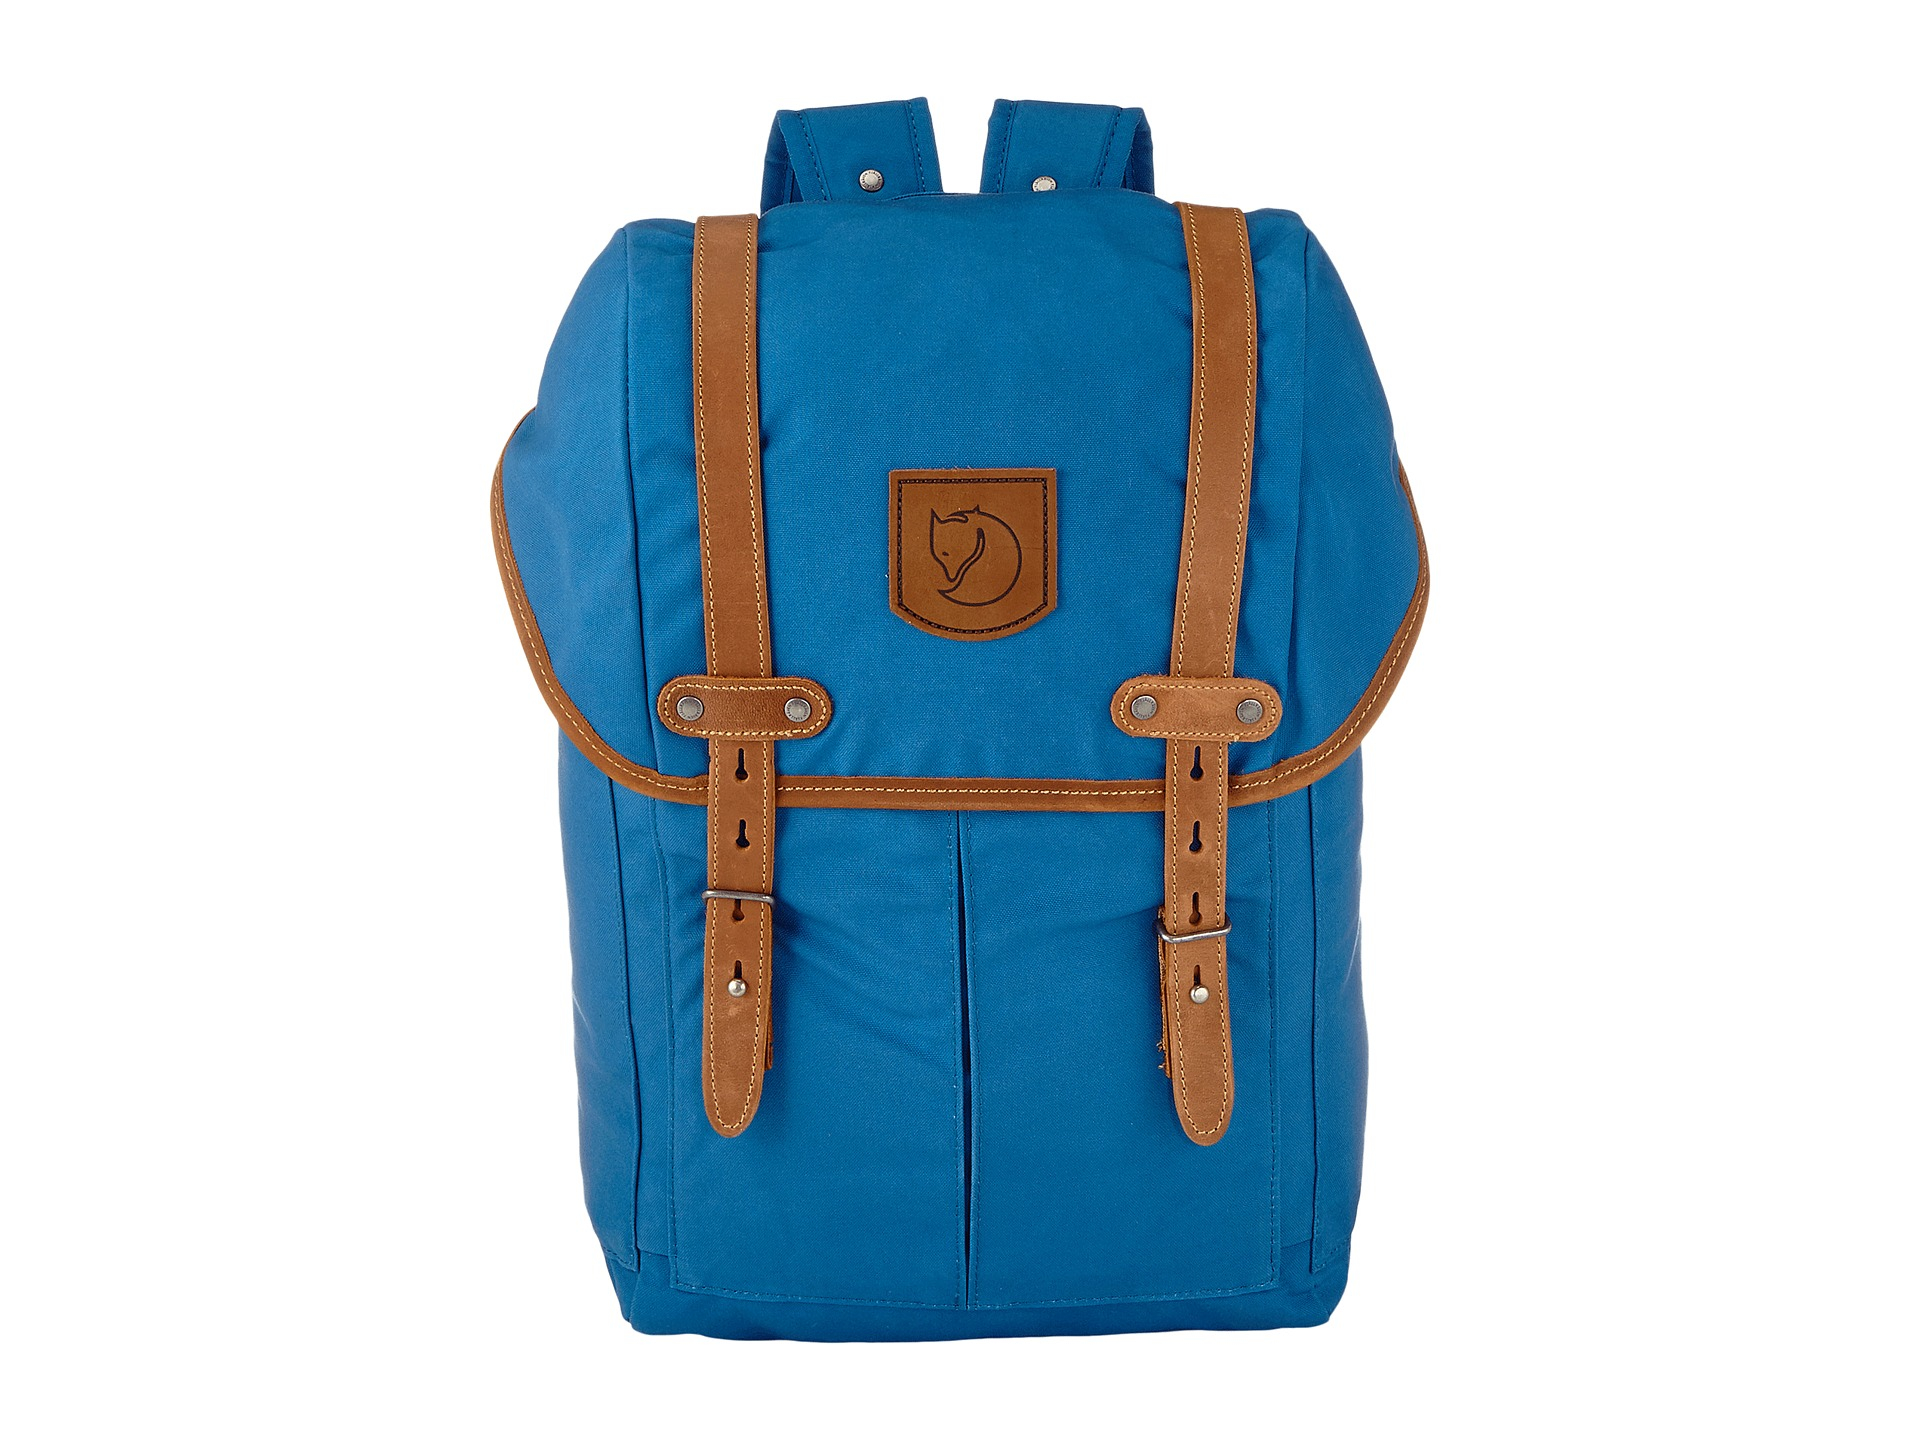 713a6630100 My laptop/work bag is a Blue Fjallraven Rucksack No. 21 Small.